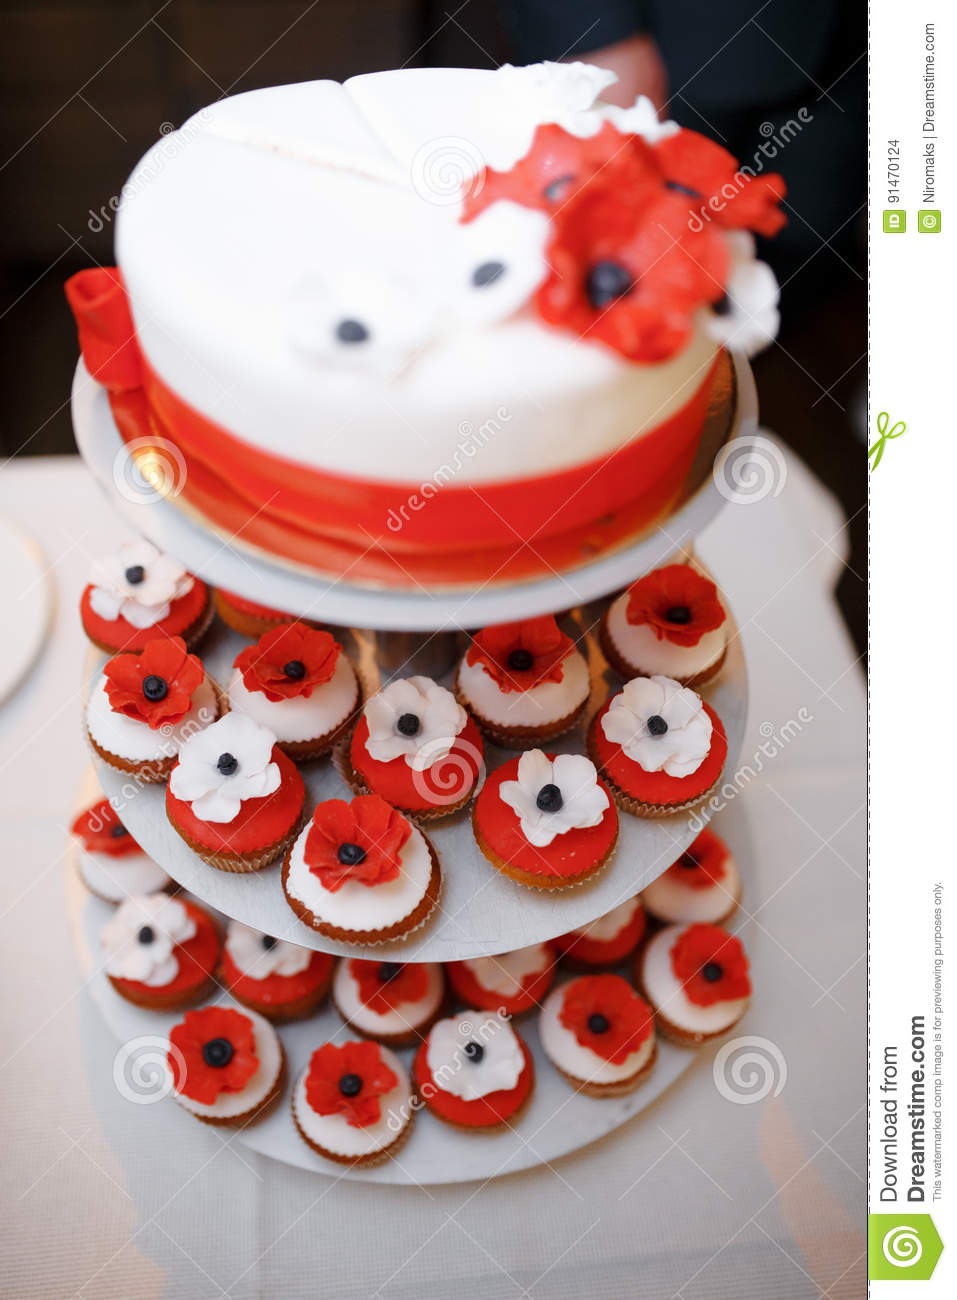 Vertical Shot Of A Red And White Wedding Cake With Small Cupcake